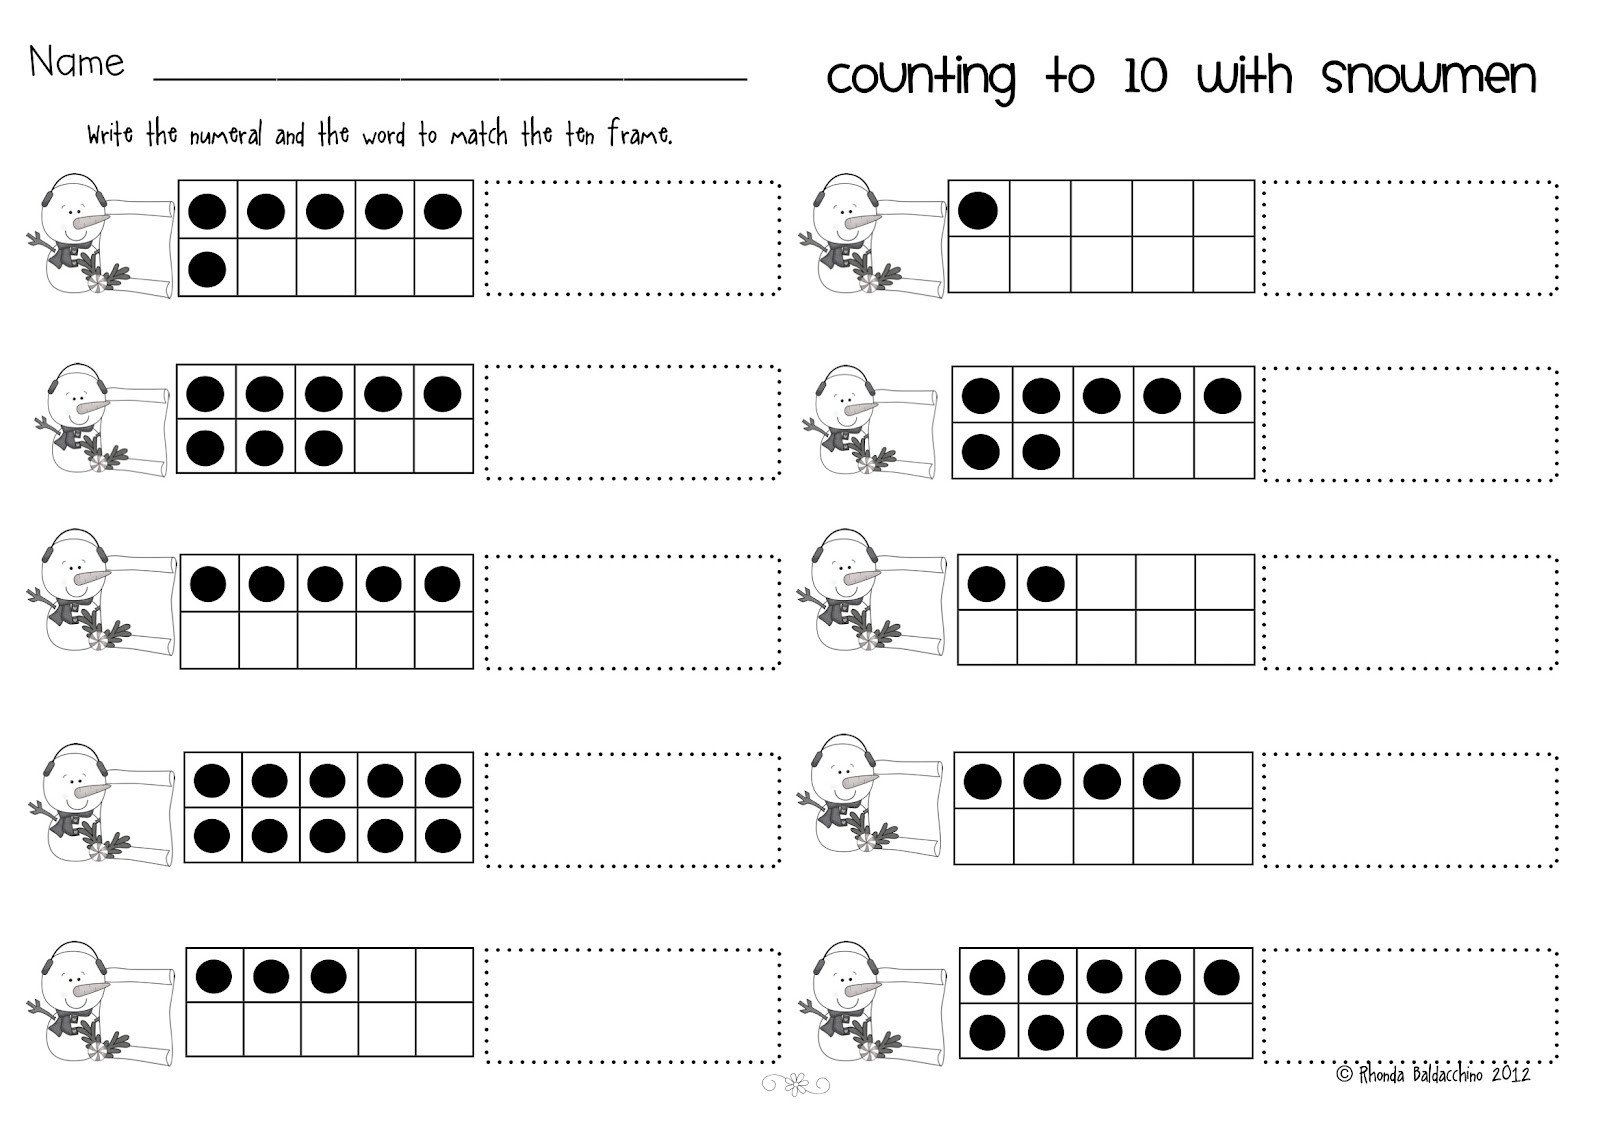 Counting Change Back Worksheets Worksheet Memory Games for Year Olds 8th Grade social